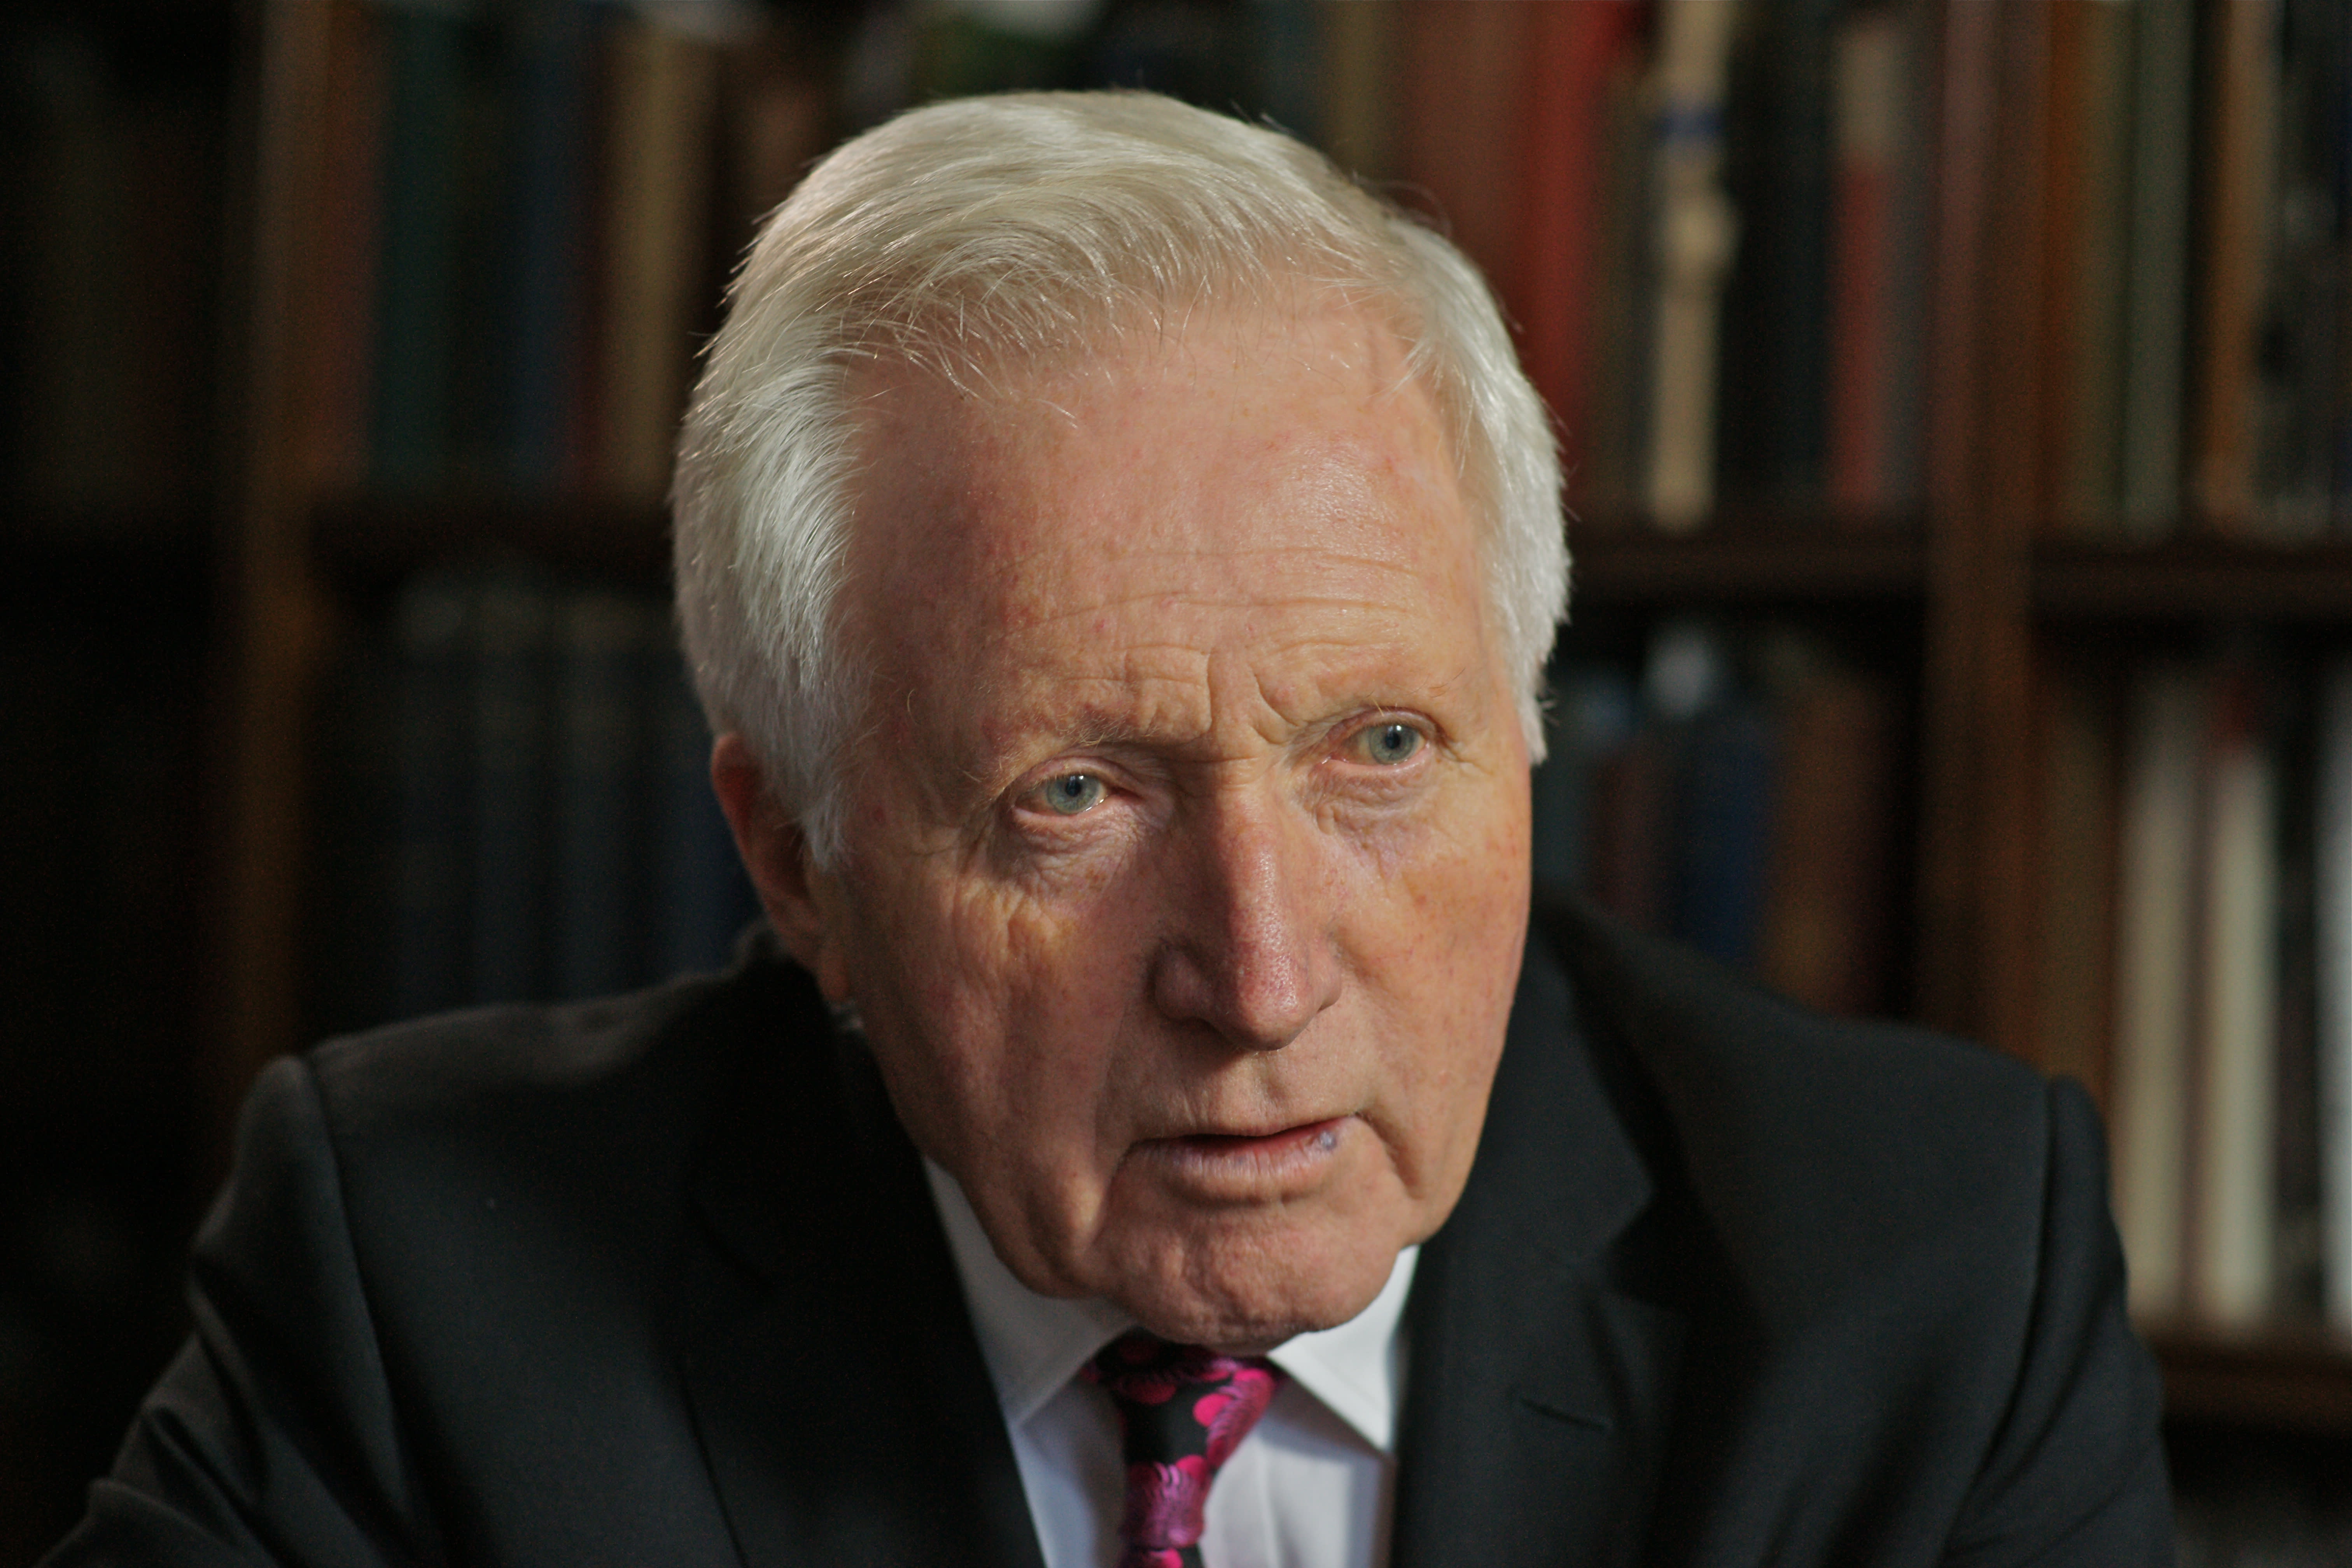 David Dimbleby brands Boris Johnson a 'liar' in interview about BBC plans and accuses him of 'apeing' Donald Trump